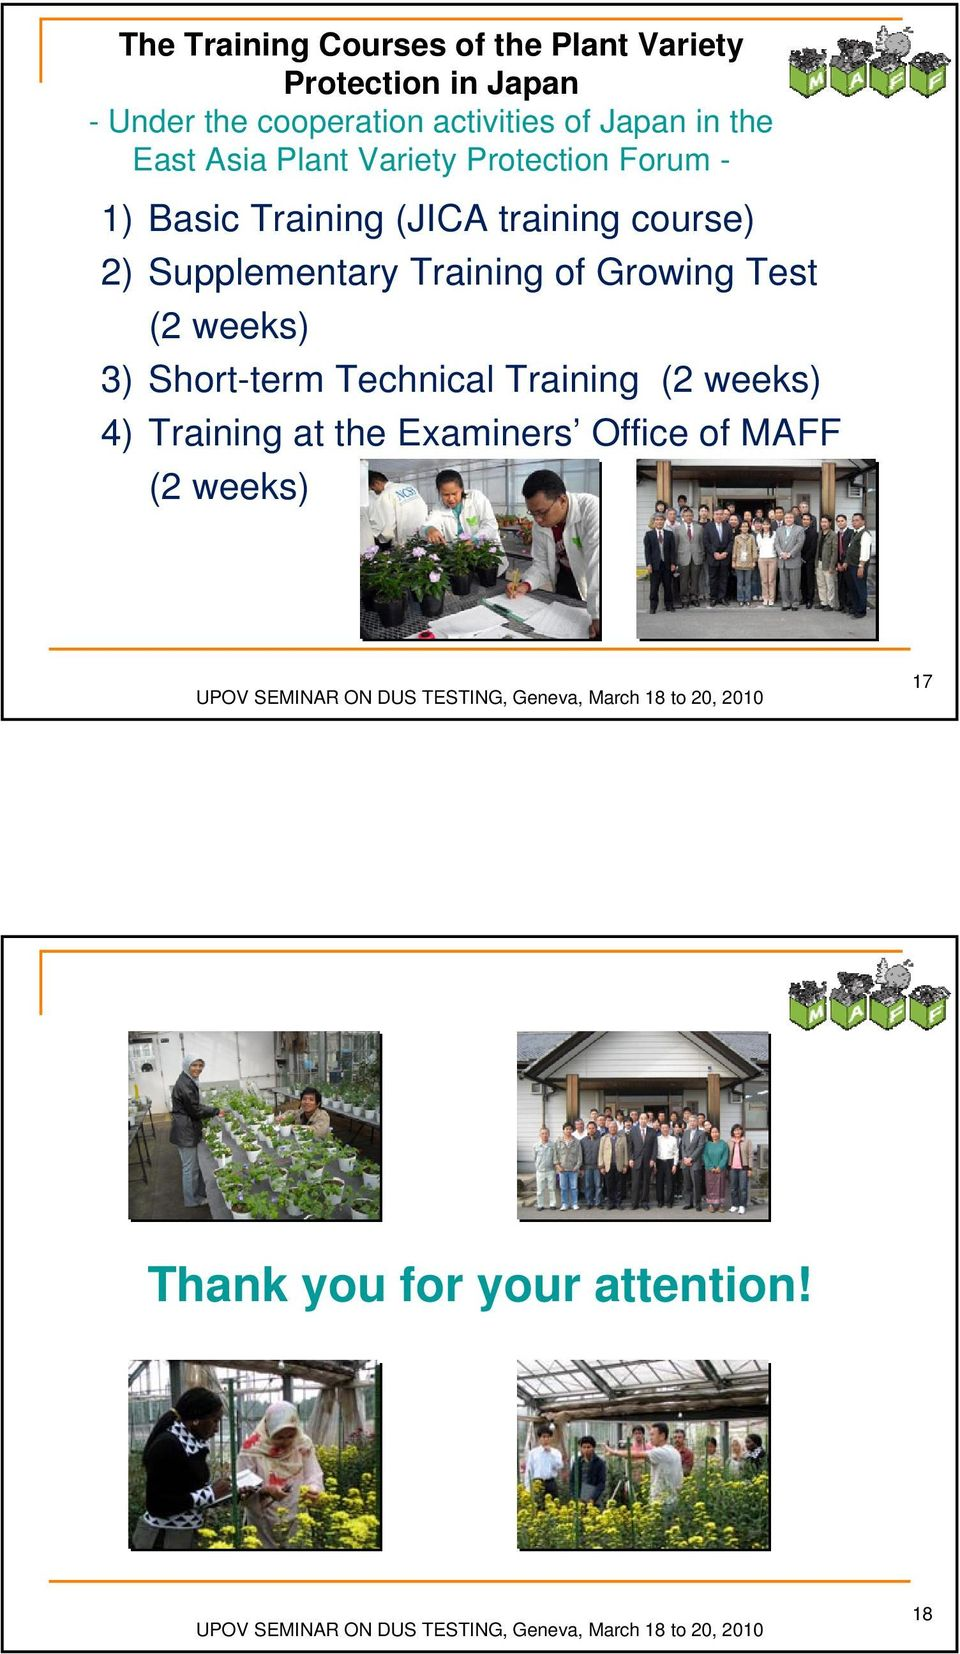 training course) 2) Supplementary Training of Growing Test (2 weeks) 3) Short-term Technical